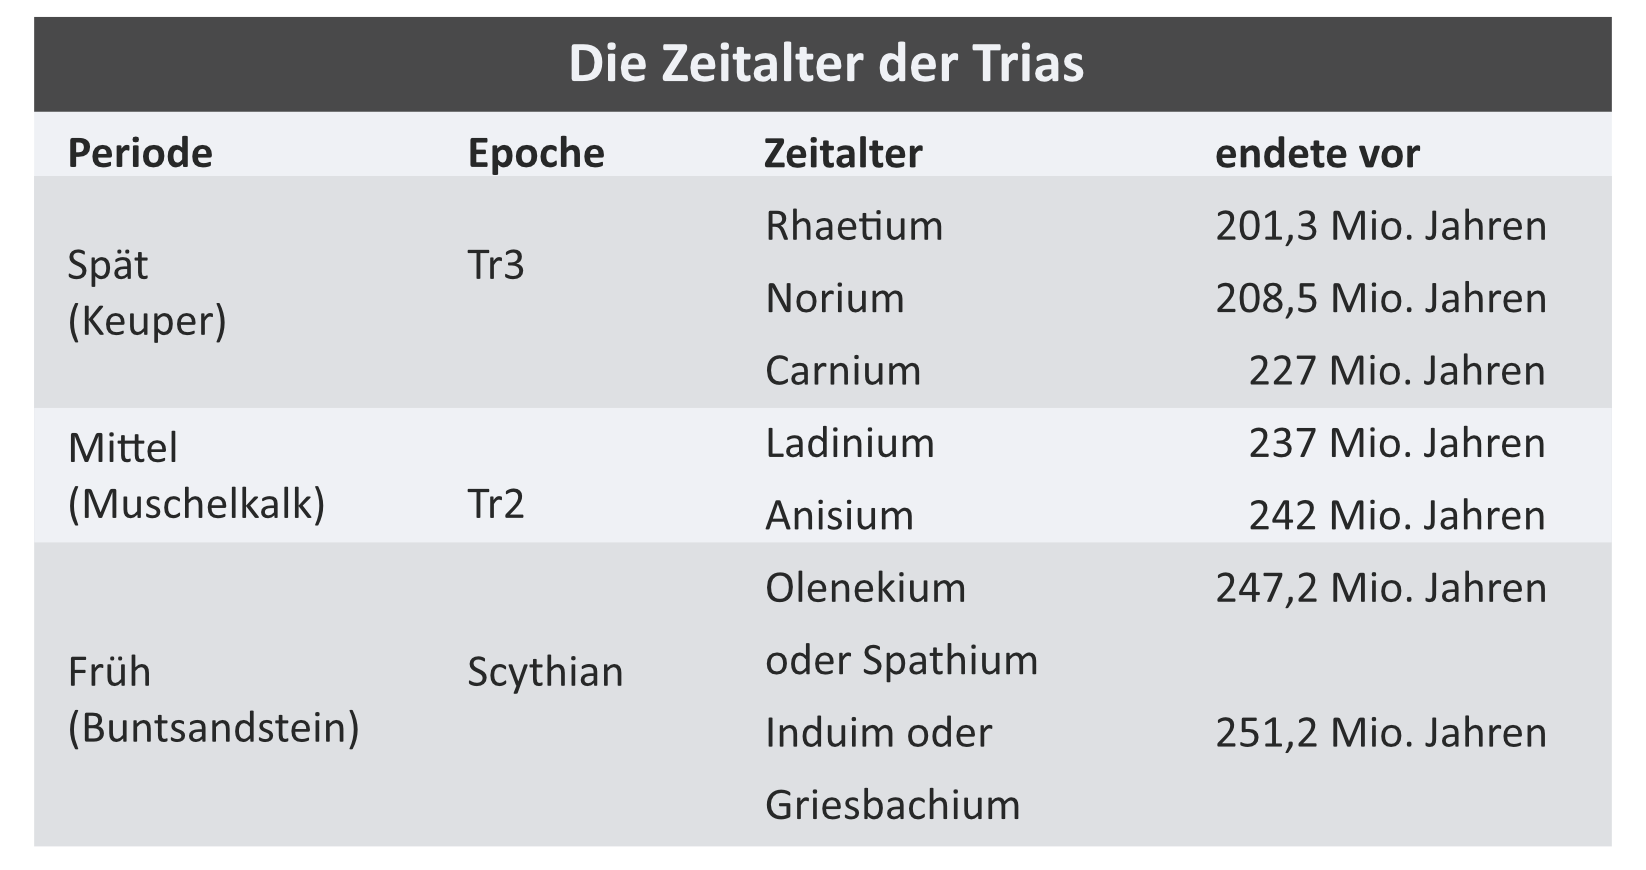 Zeitalter der Trias / © Dinodata.de. Creative Commons 4.0 International (CC BY 4.0)